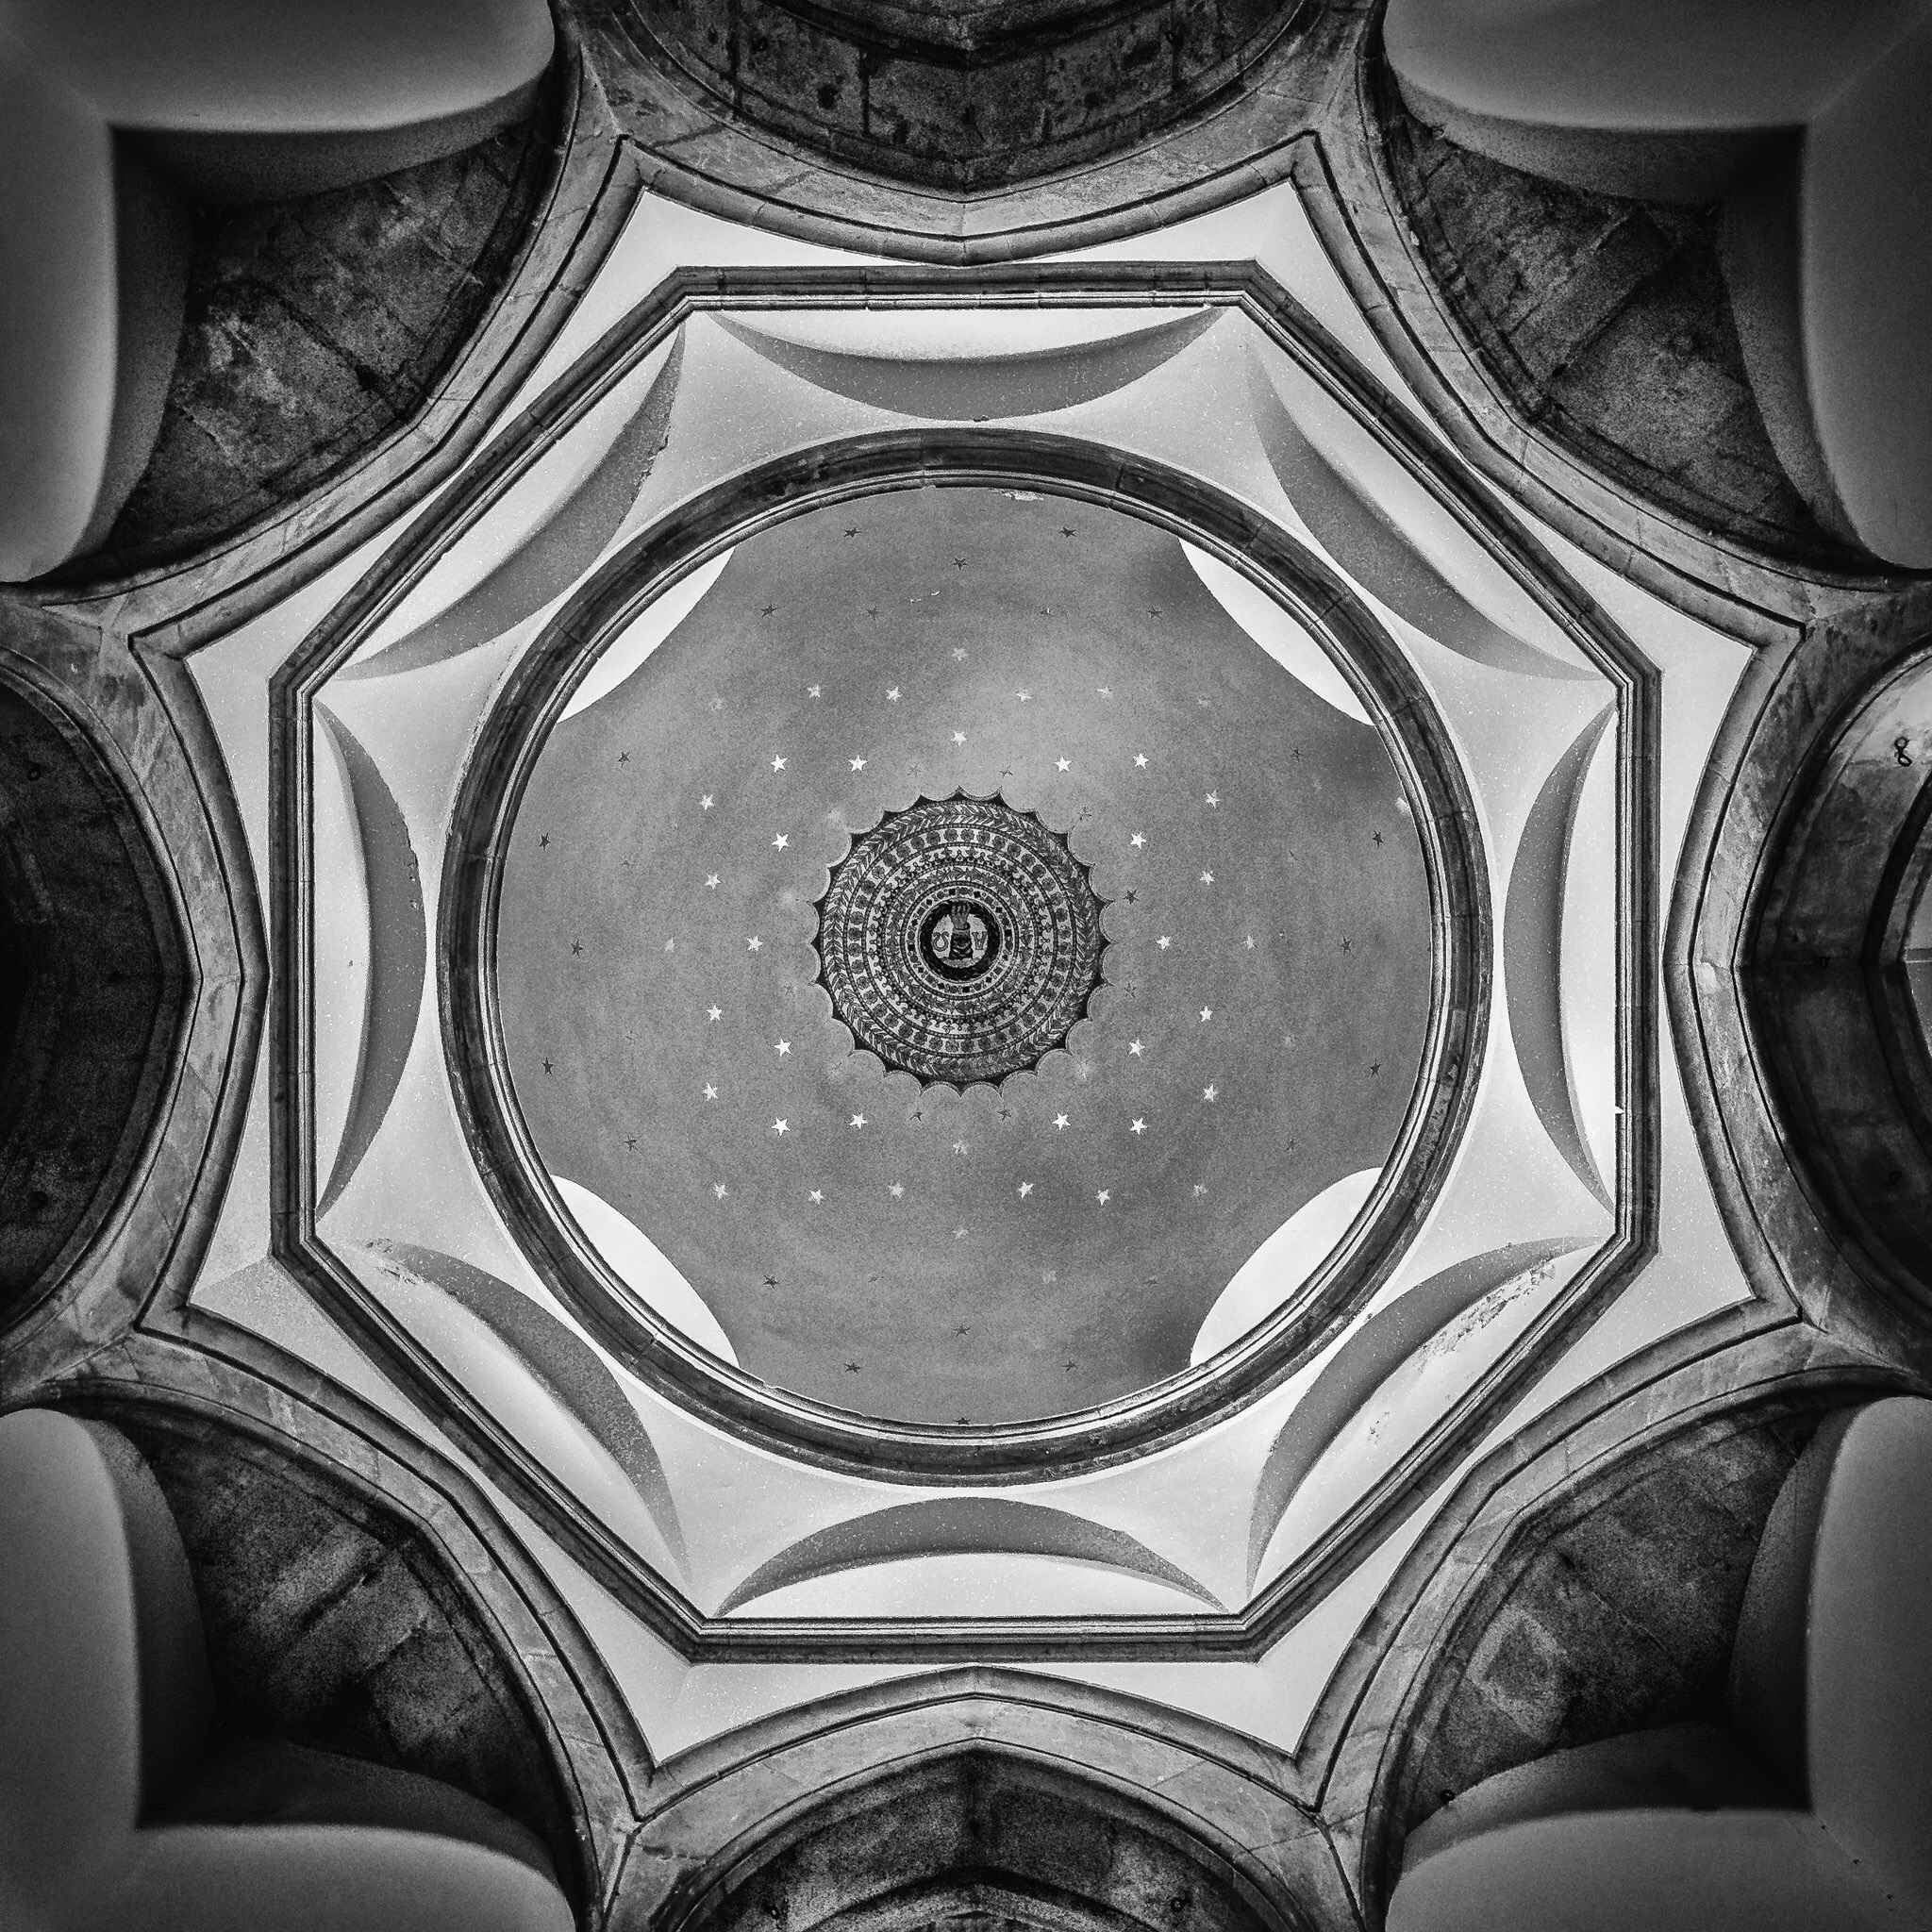 This is the ceiling of the new church dome